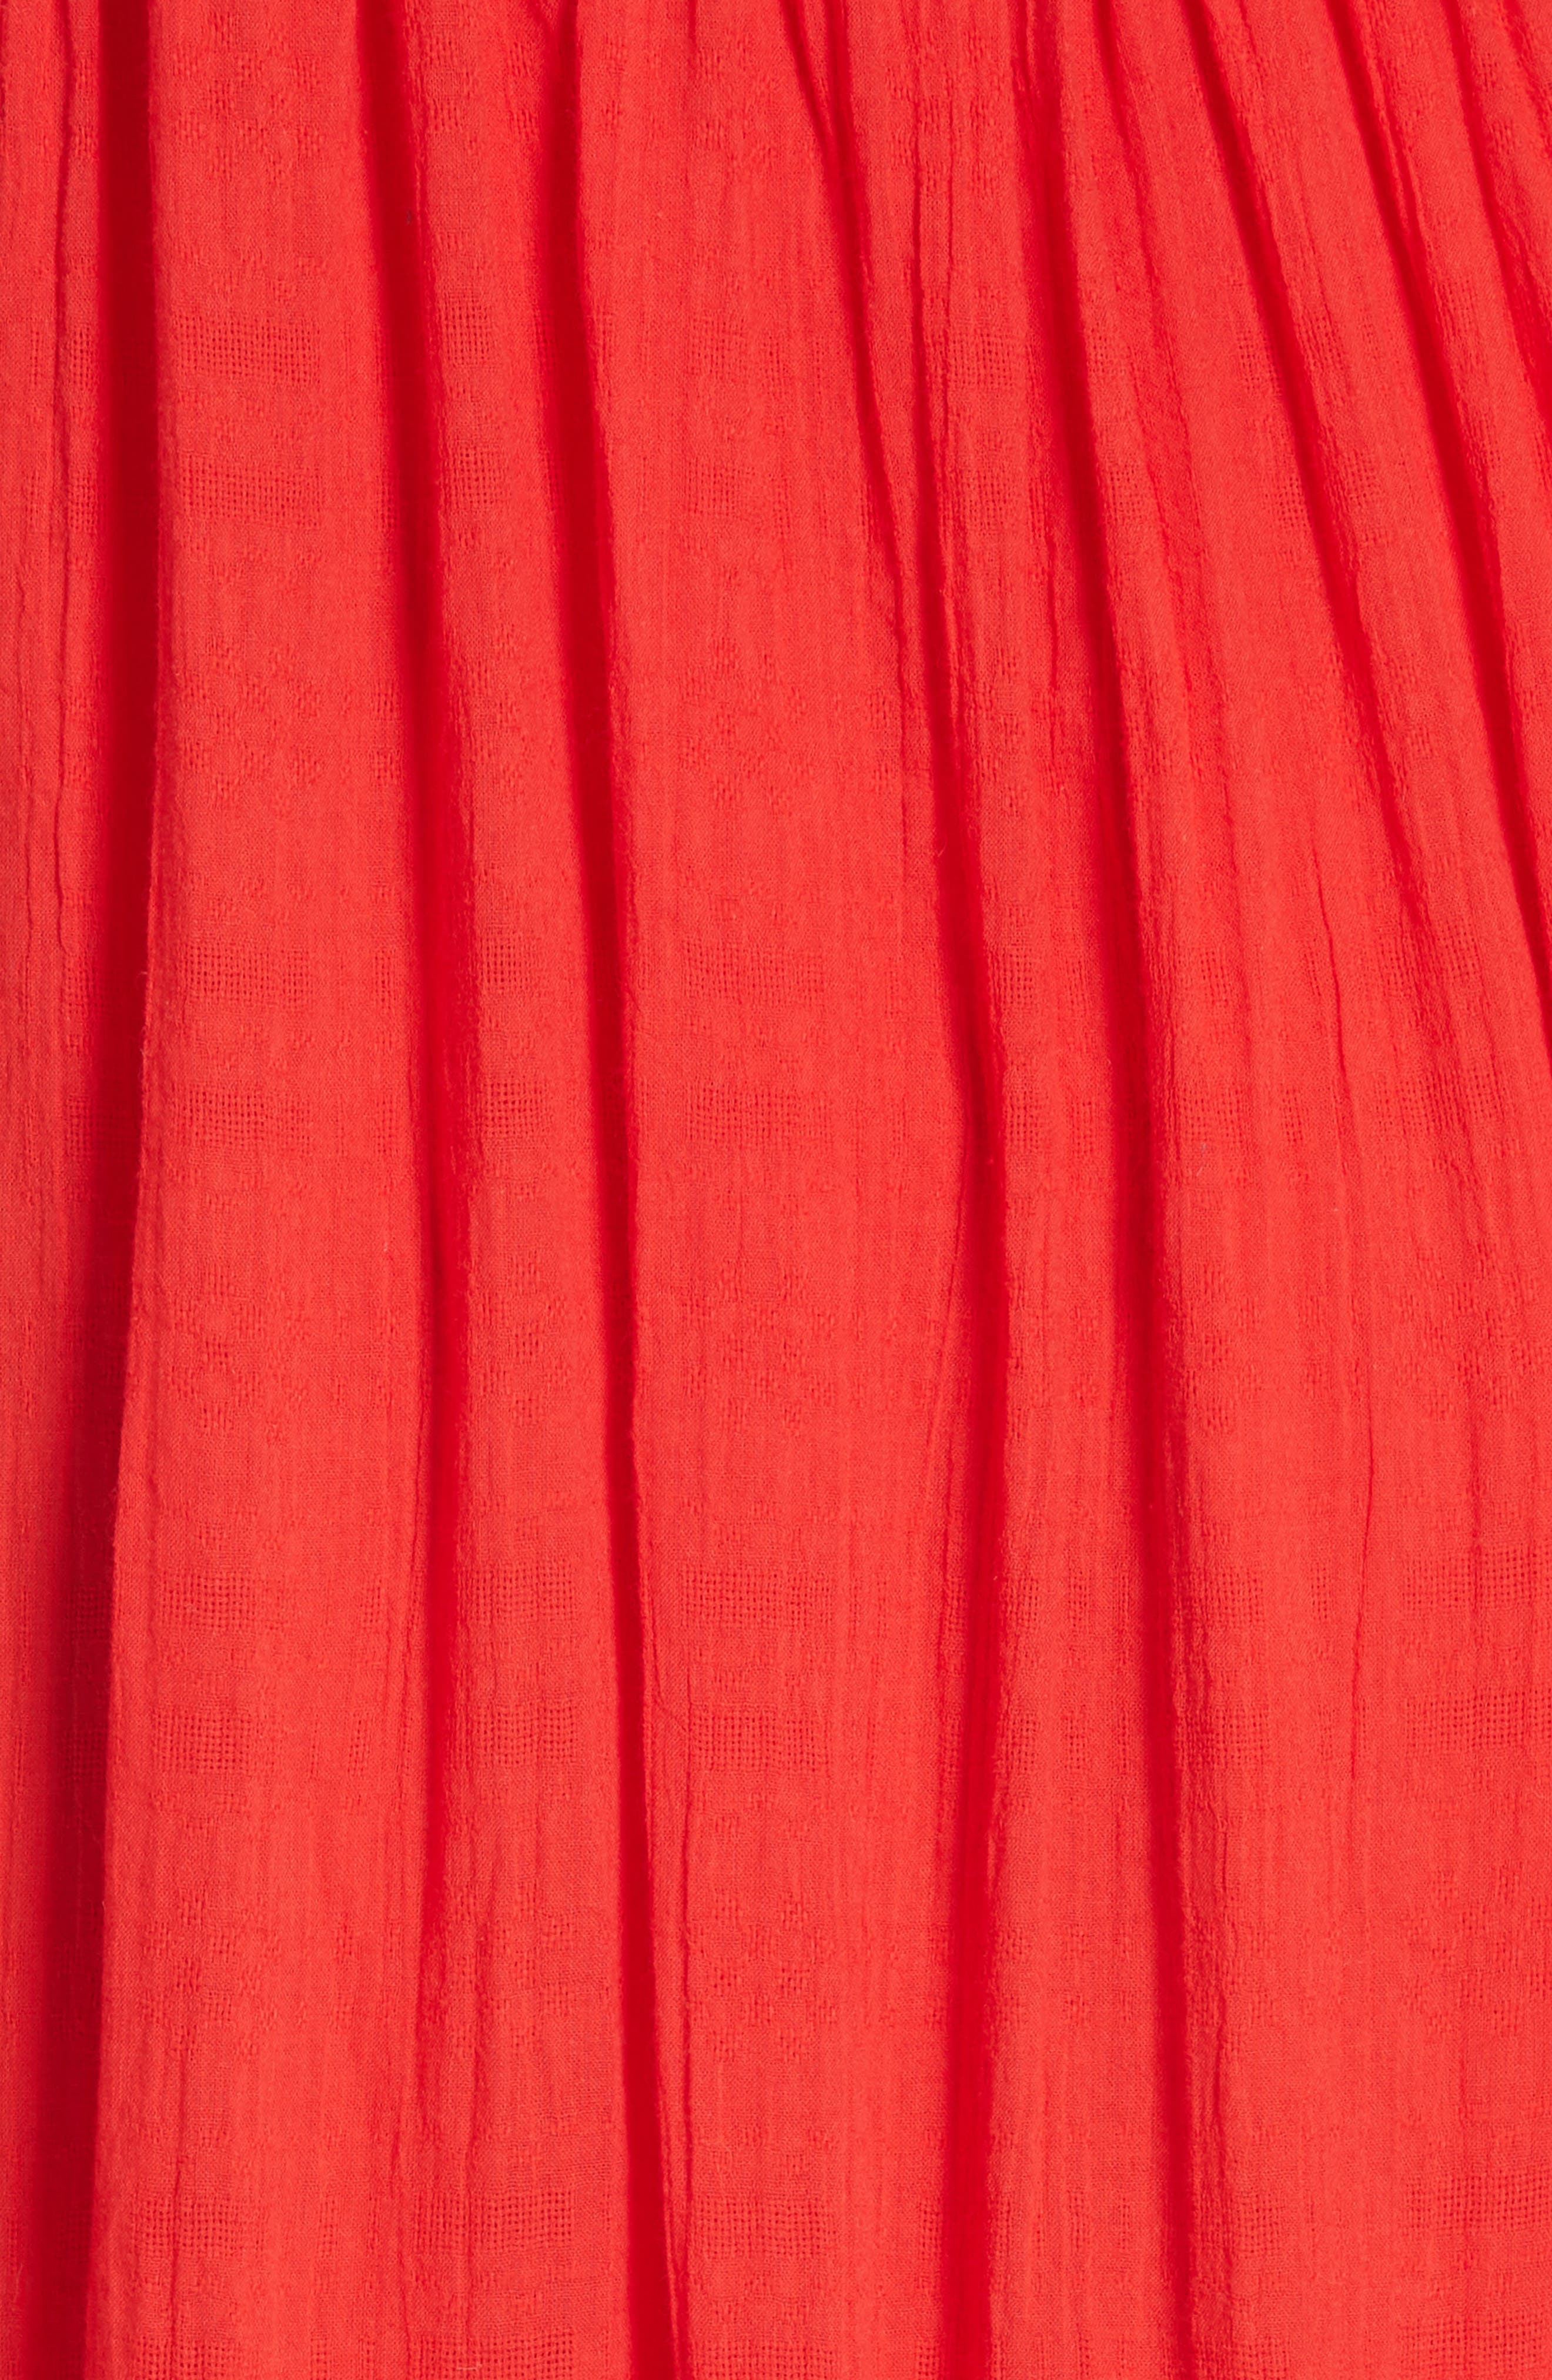 Caught Your Eye Maxi Dress,                             Alternate thumbnail 5, color,                             Red